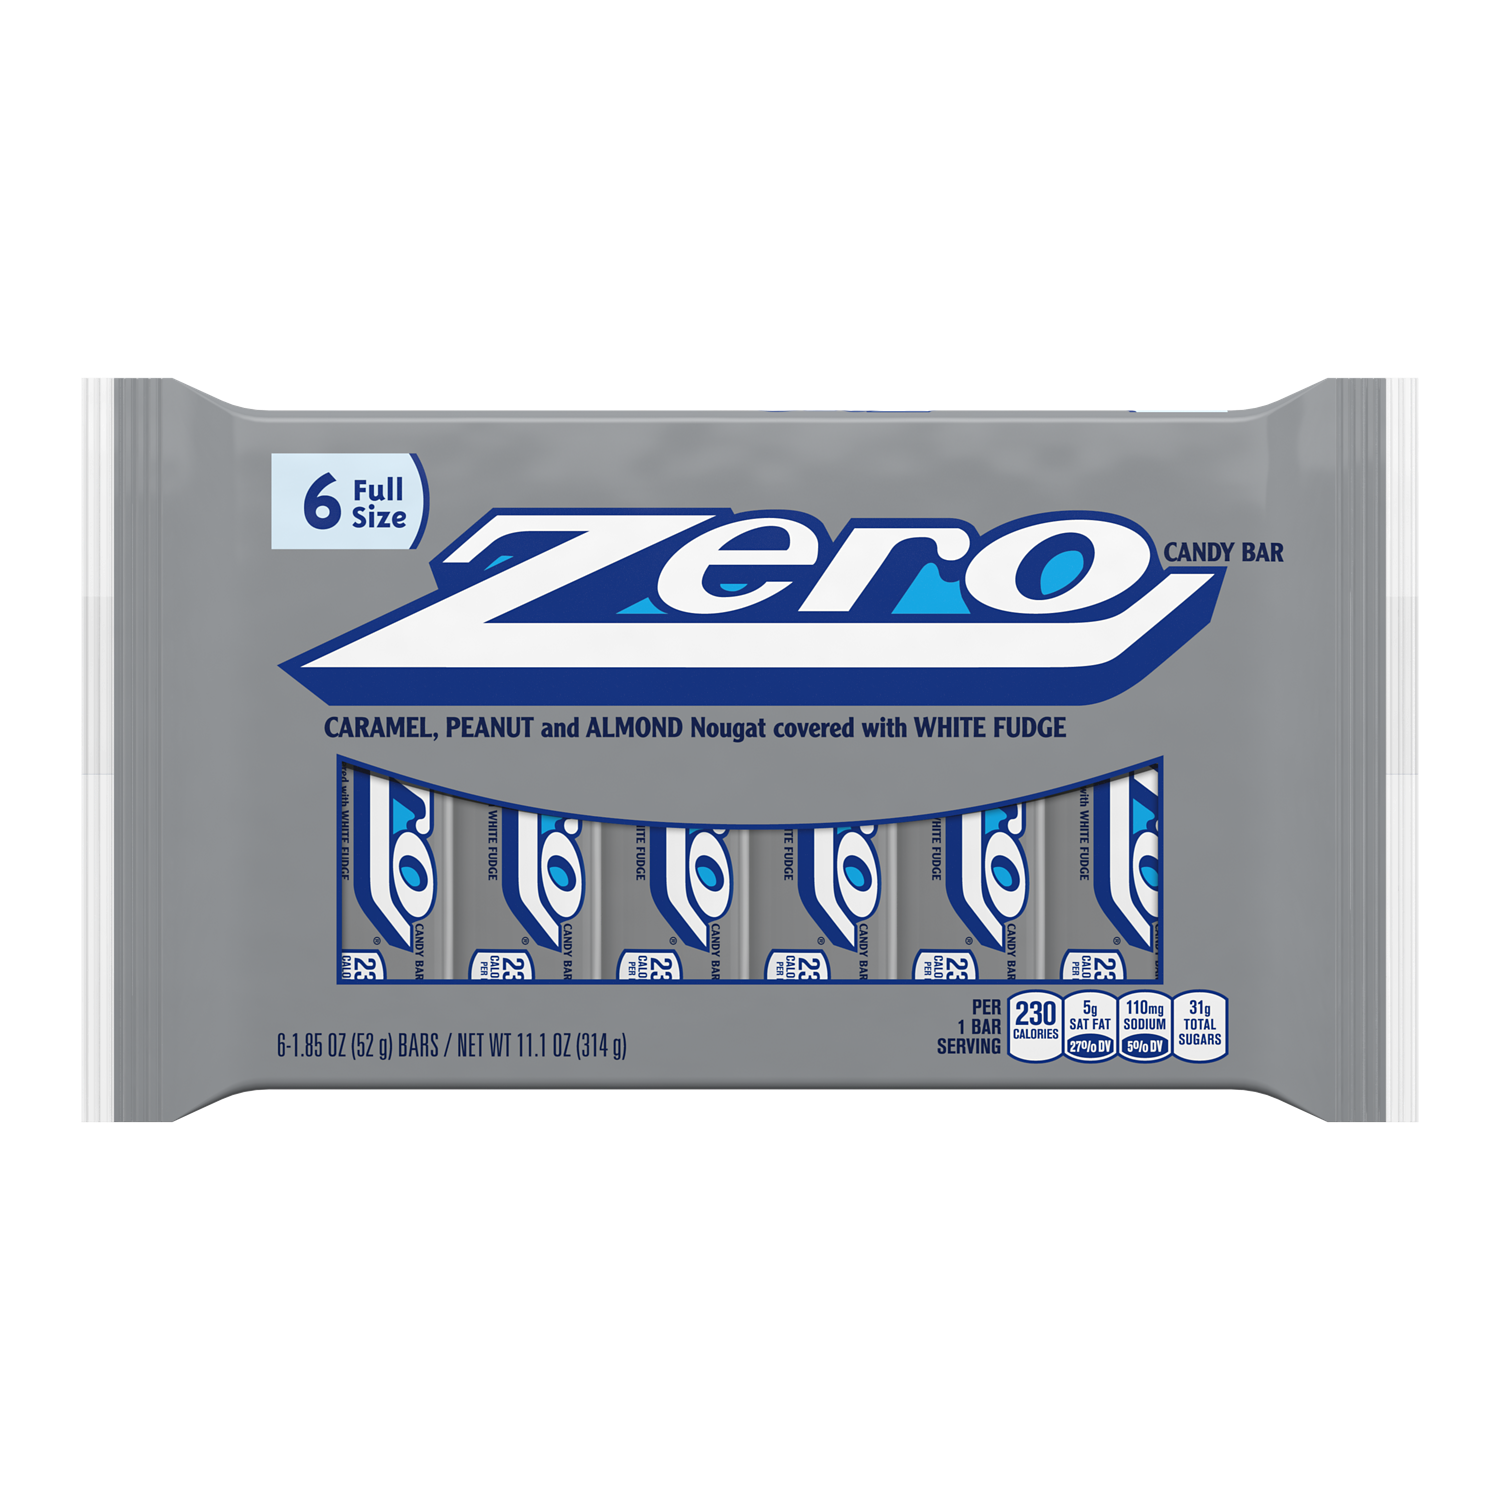 ZERO Candy Bars, 1.85 oz bag, 6 pack - Front of Package